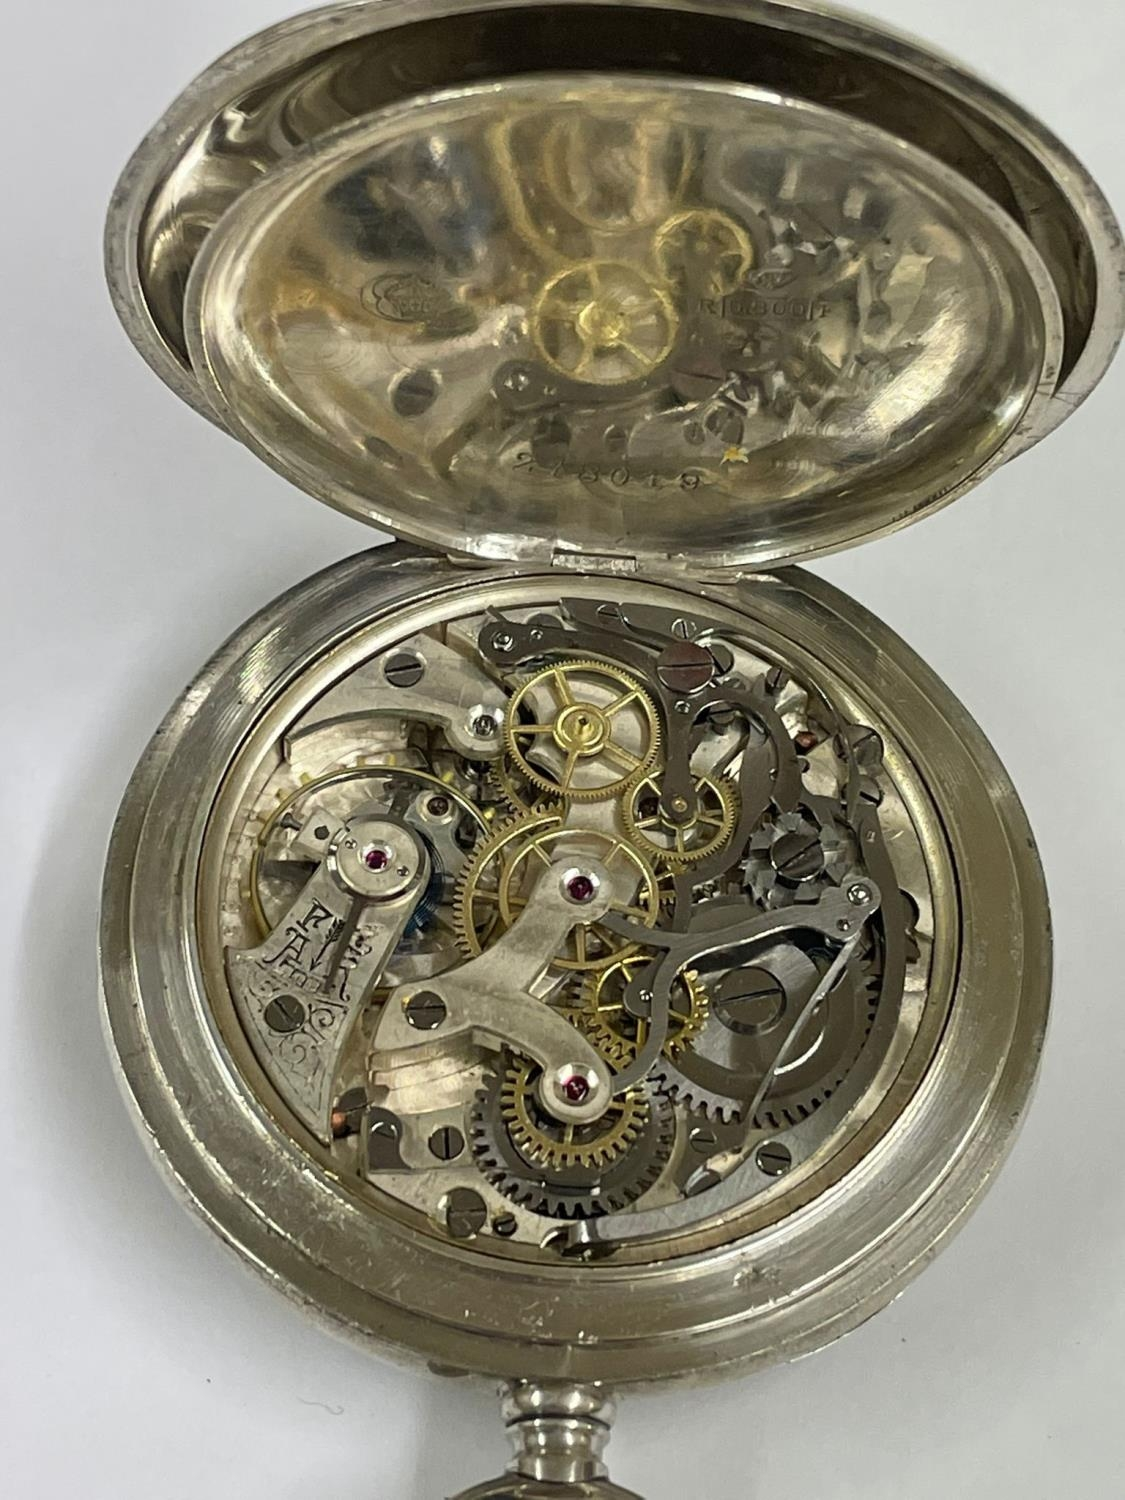 Vintage Silver Chronograph Pocket Watch. Working & Stop Function are working but sold with no - Image 5 of 6